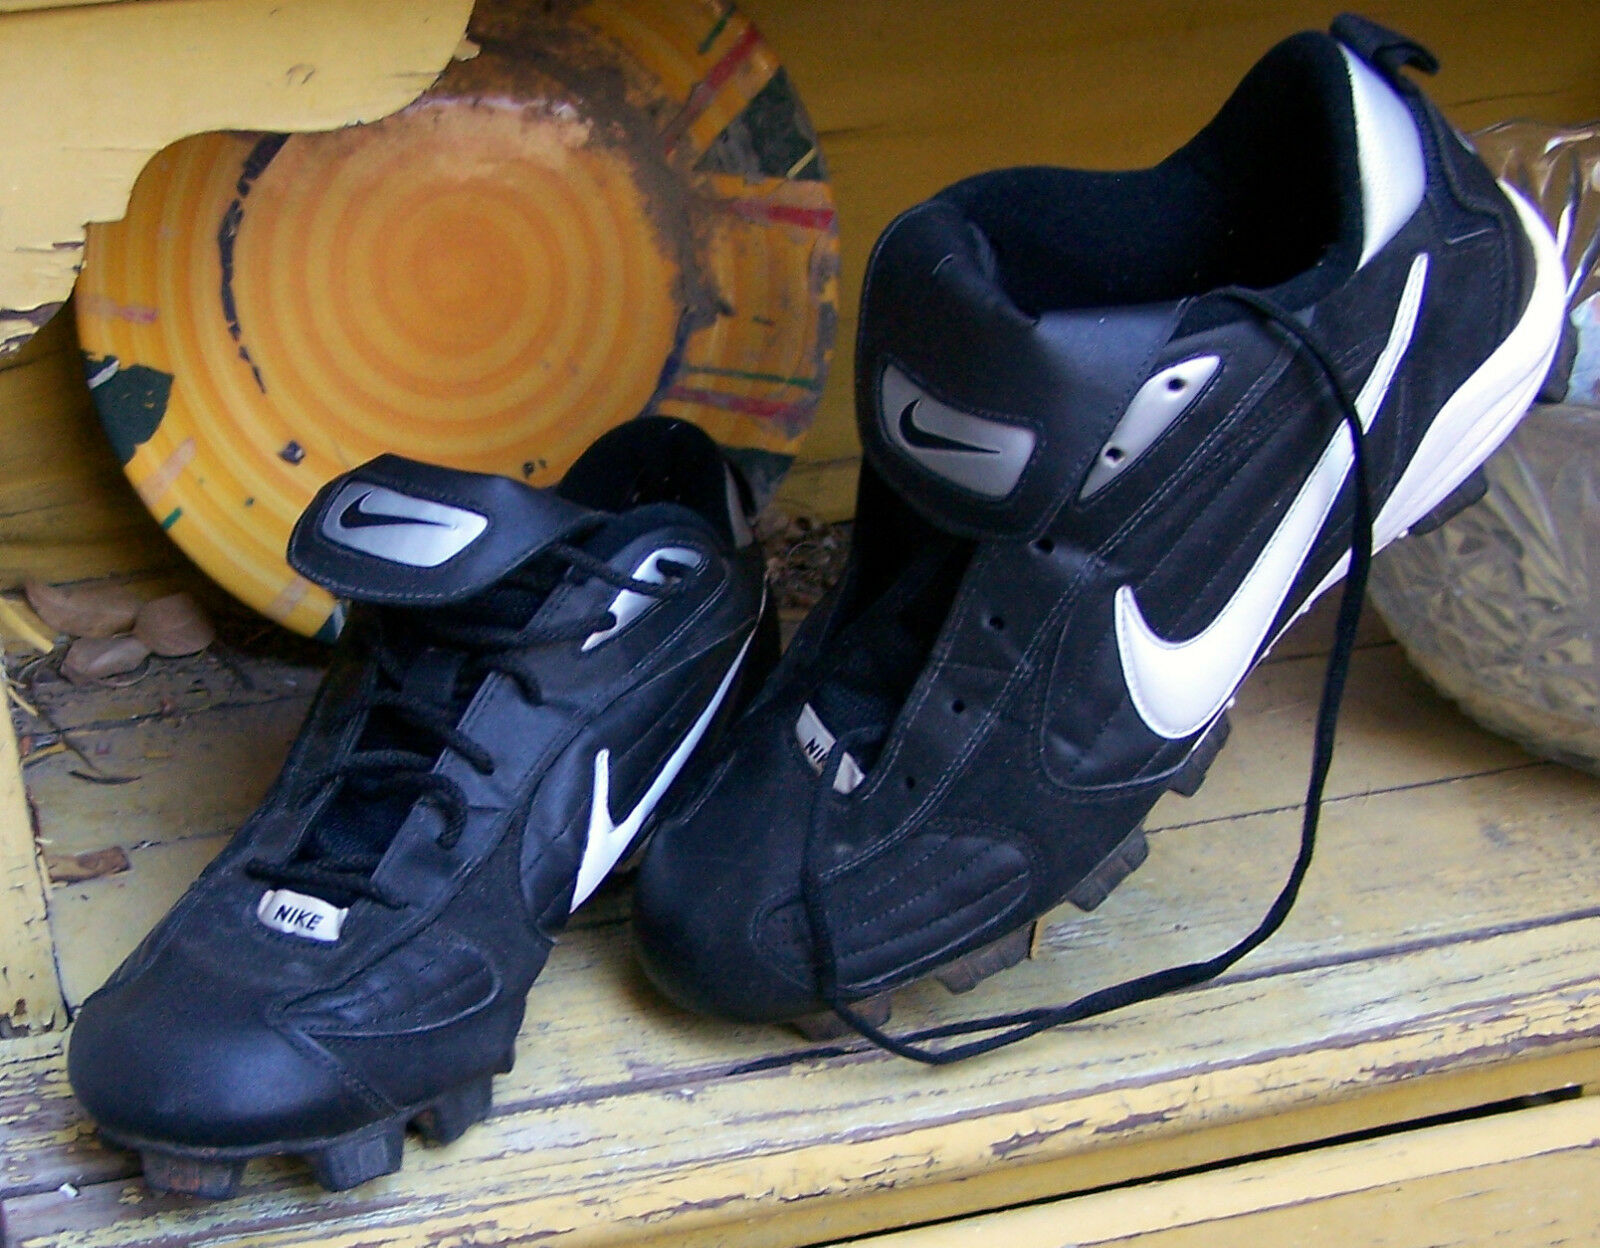 NIKE MENS RUBBER CLEAT Sz 12 athletic shoes lace-up pre-owned EC black  Wild casual shoes